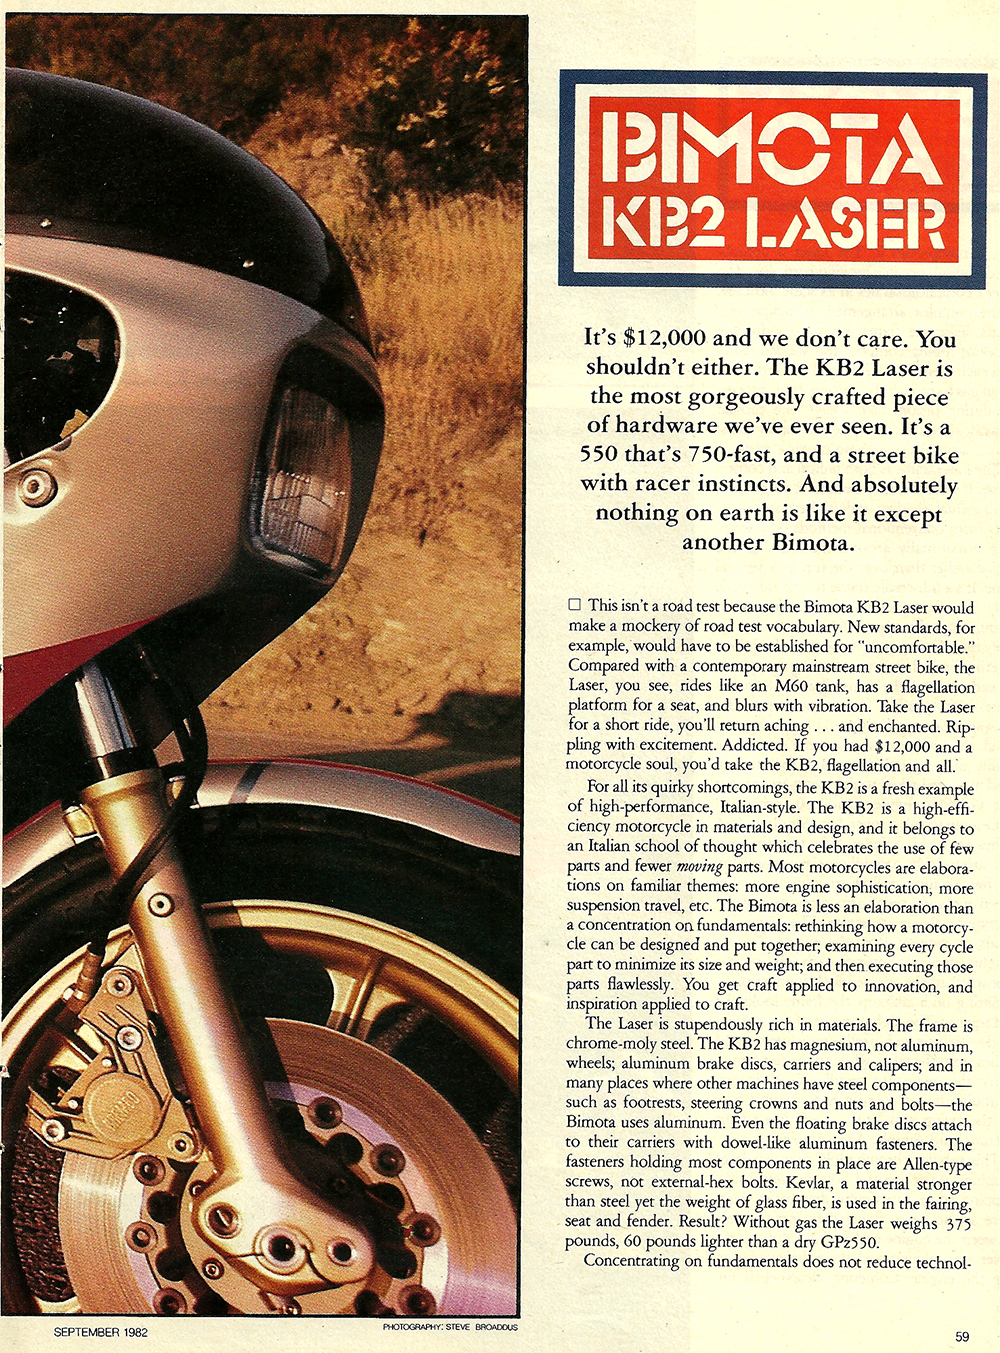 1982 Bimota KB2 Laser road test 2.jpg